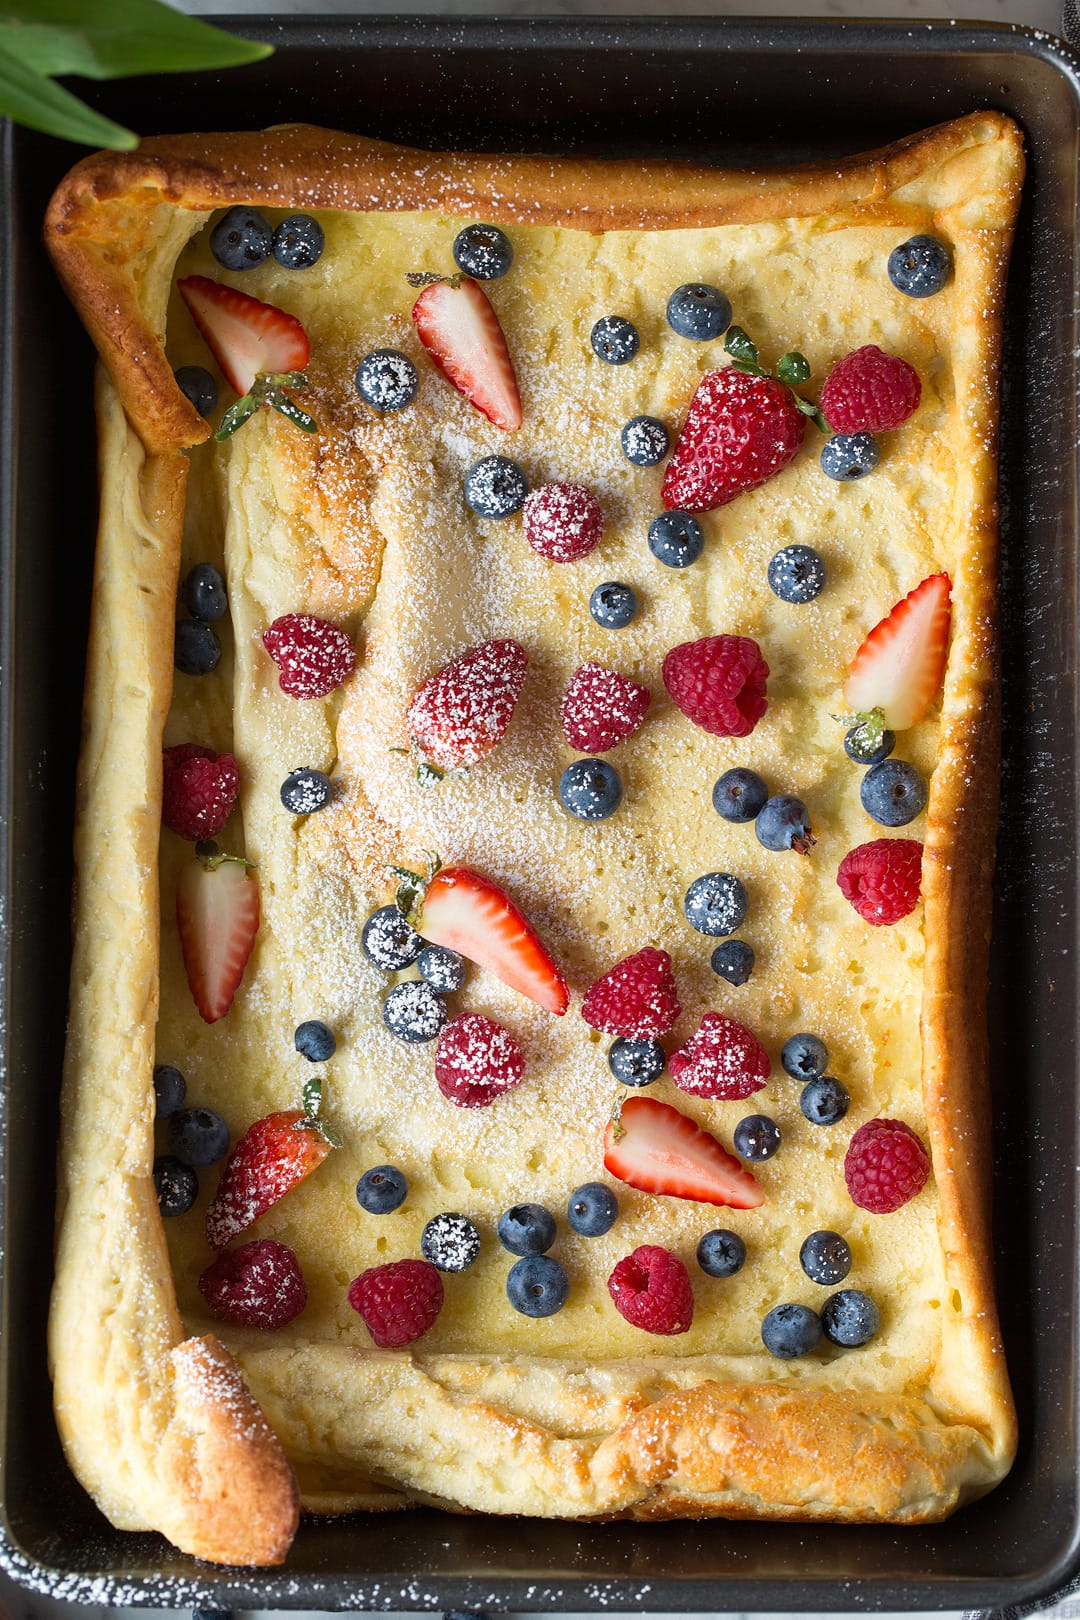 German Pancake in baking pan topped with fresh sliced fruit and powdered sugar